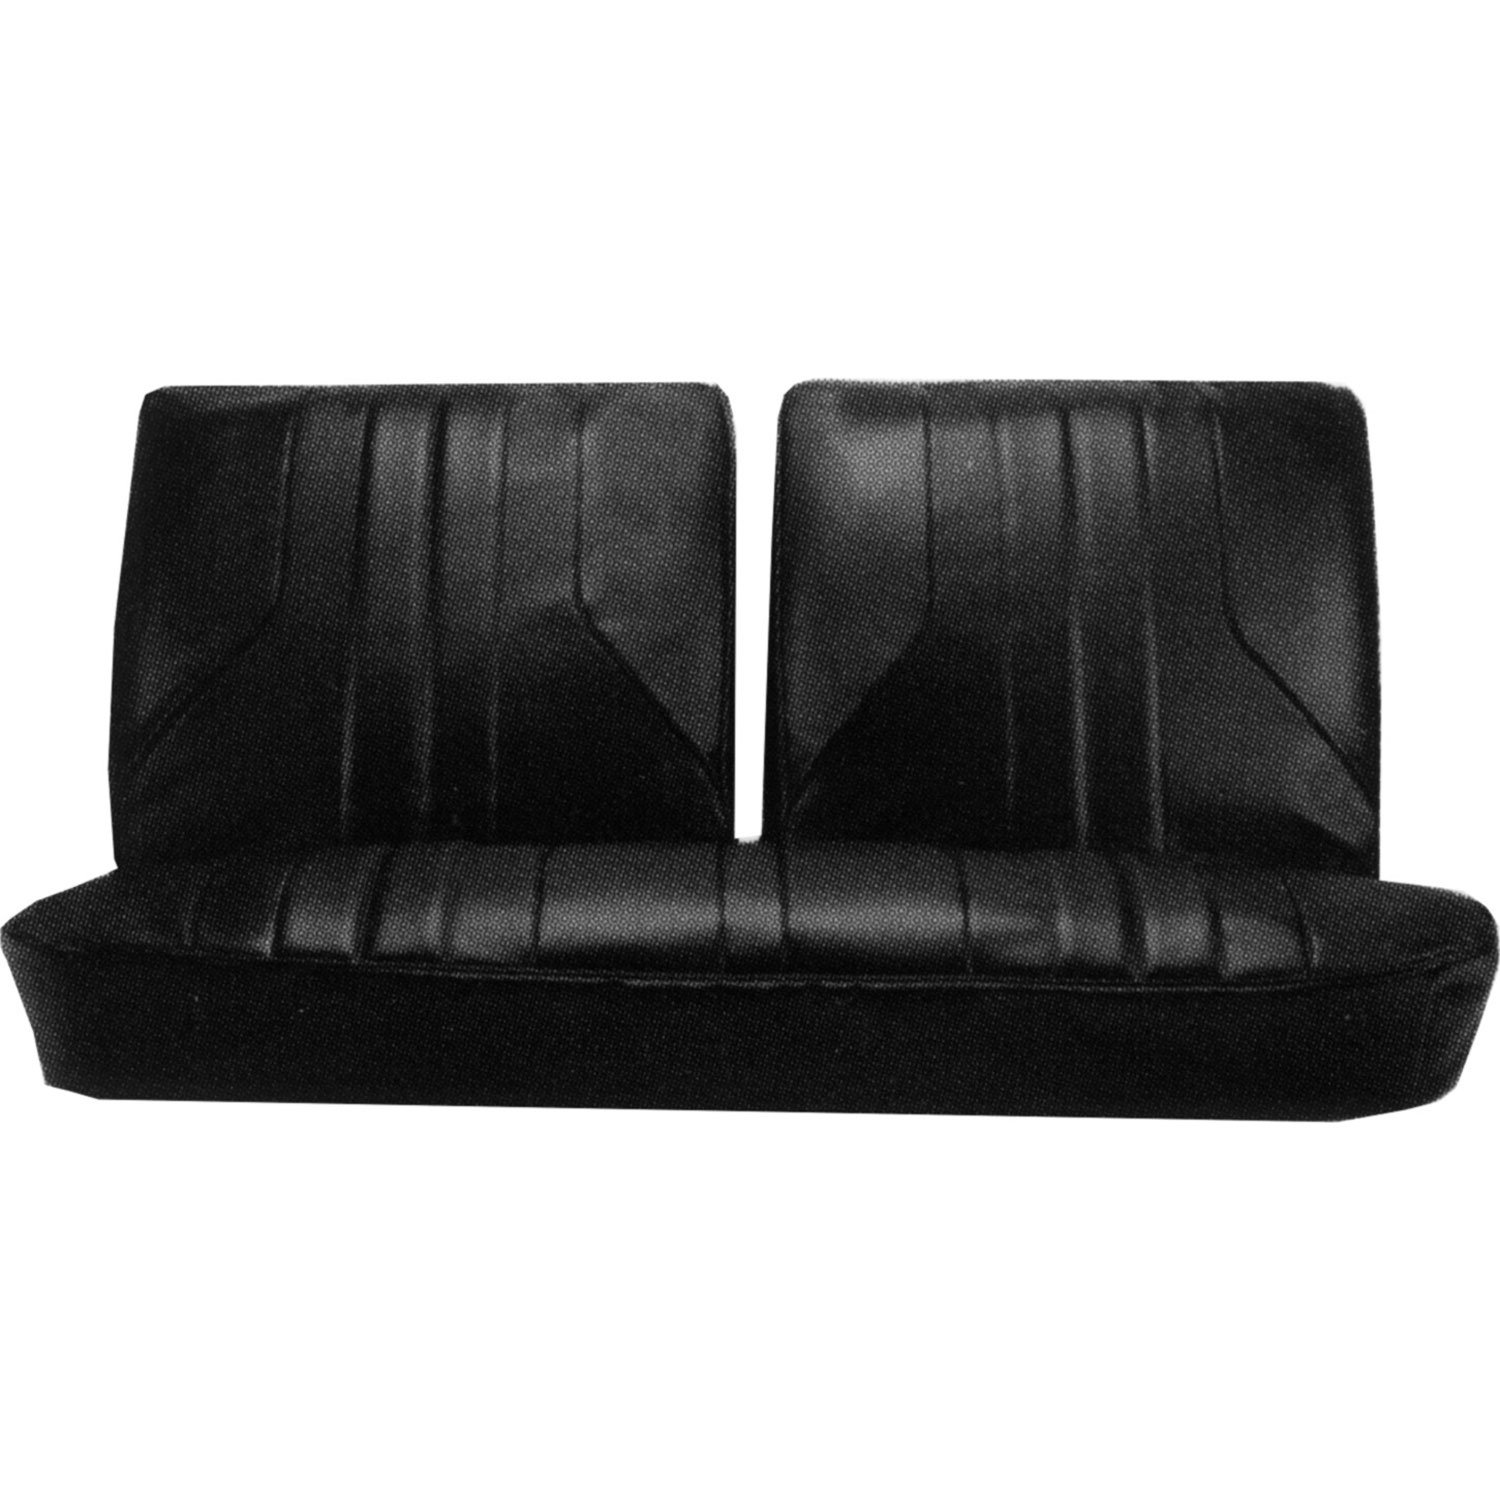 1969 Buick Skylark GS 350 Bench Front and Rear Seat Upholstery Covers